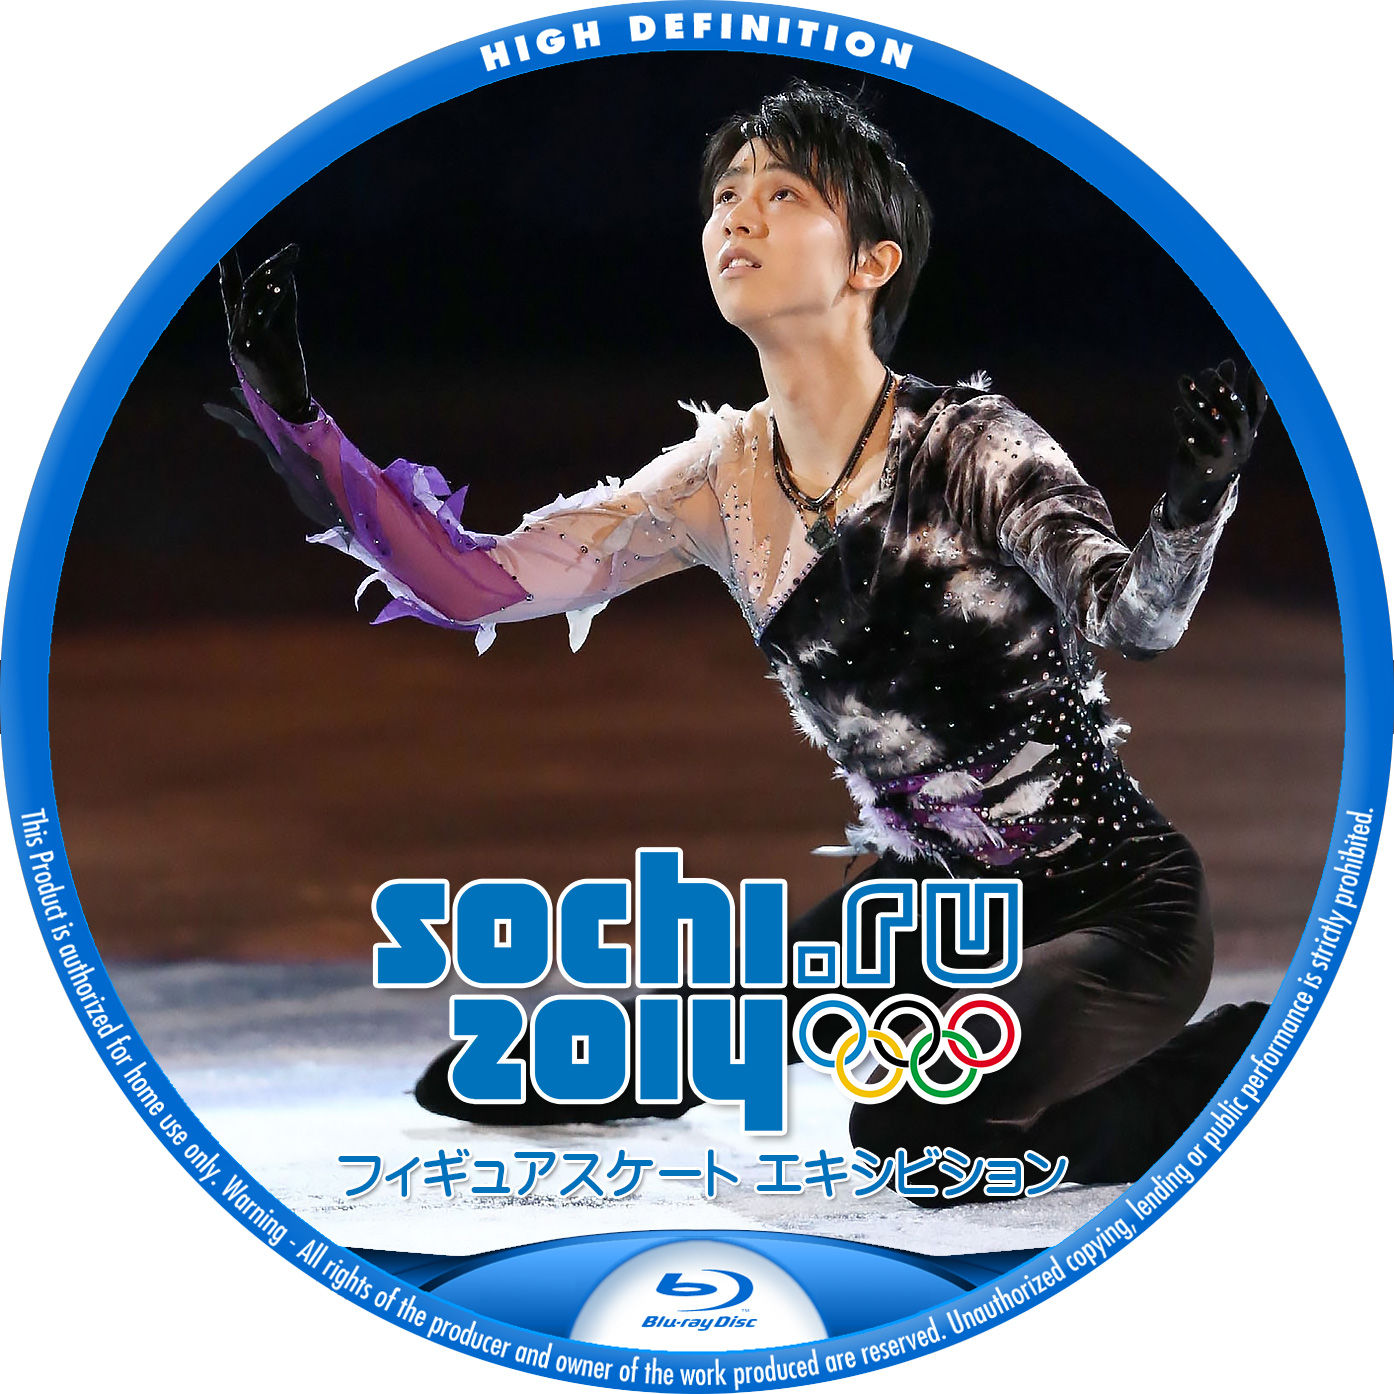 Sochi_Figure_Exhibition-BD2